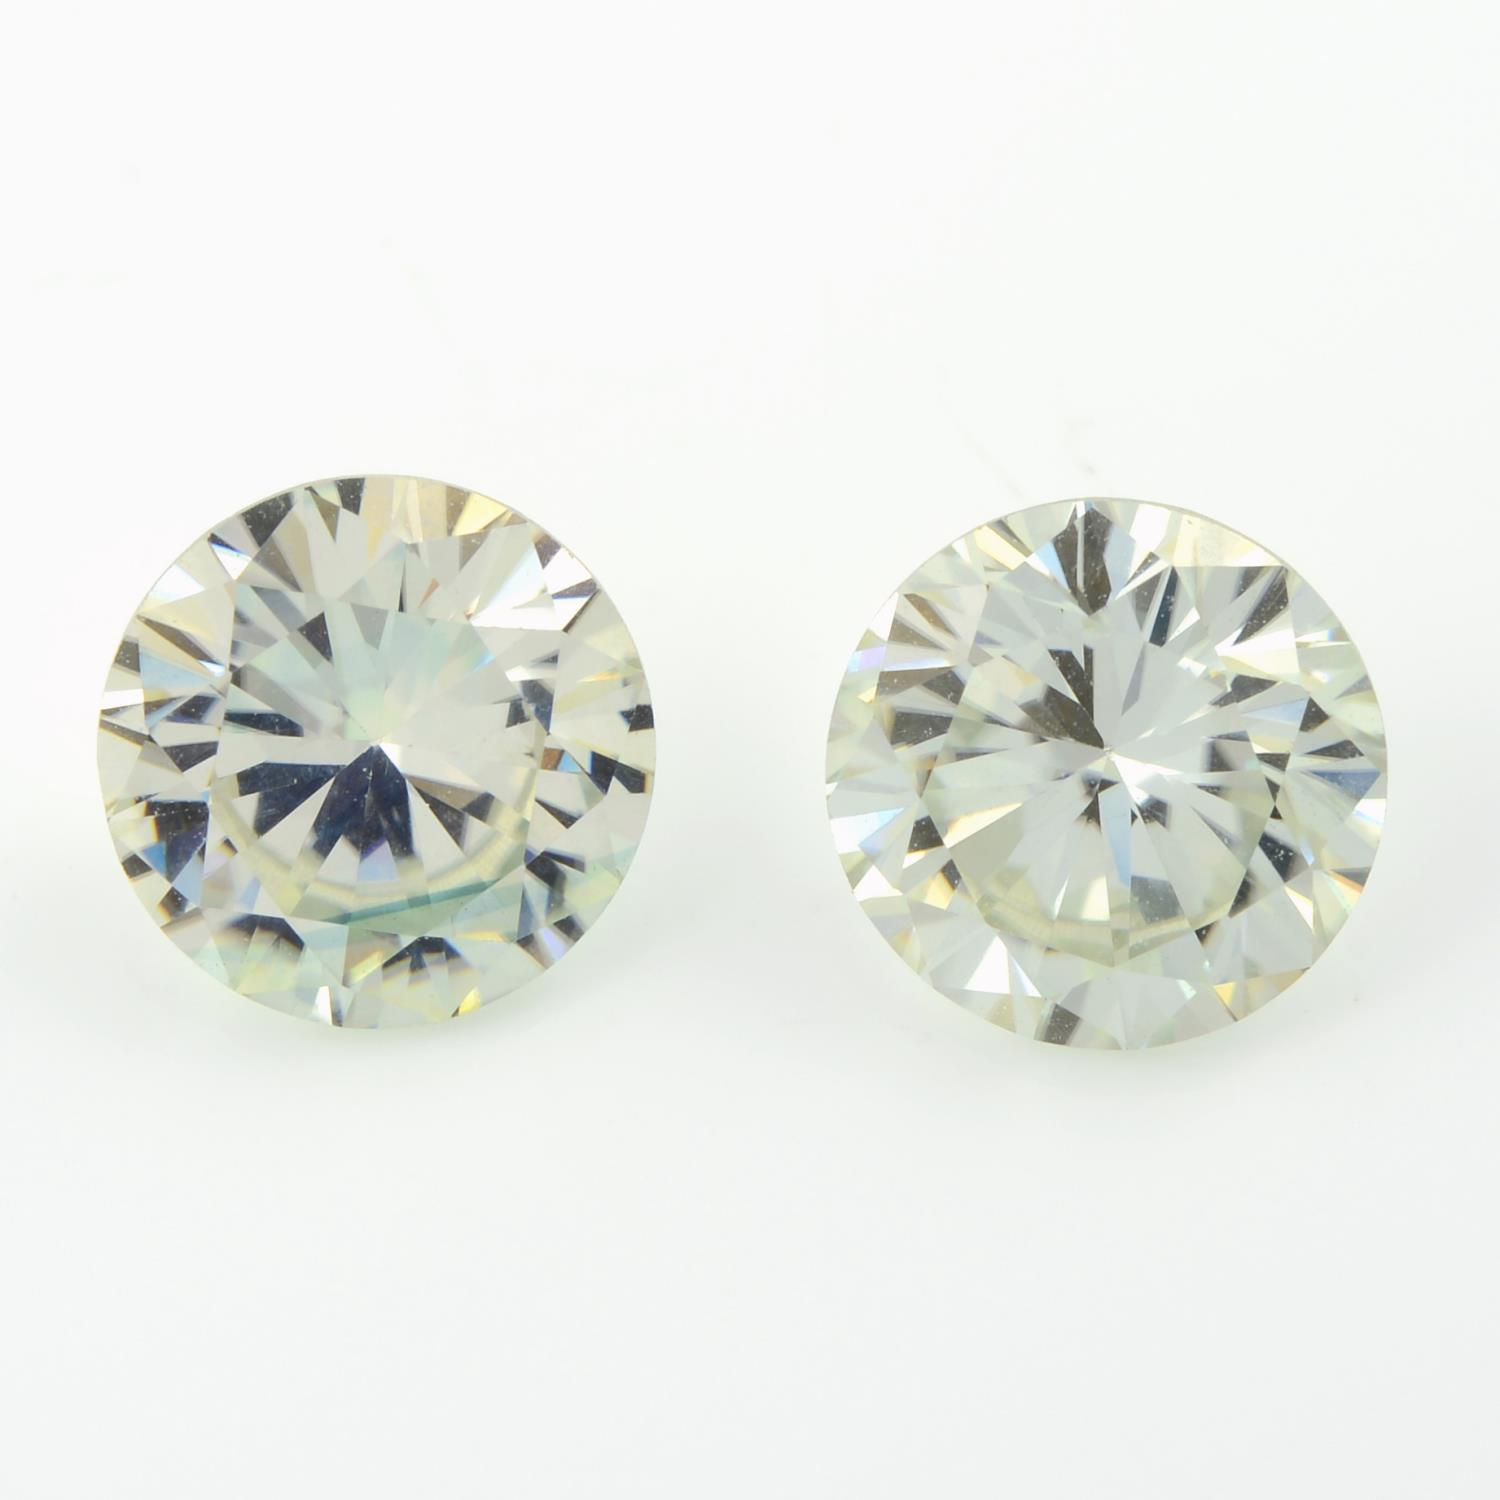 A pair of circular-shape synthetic moissanites.